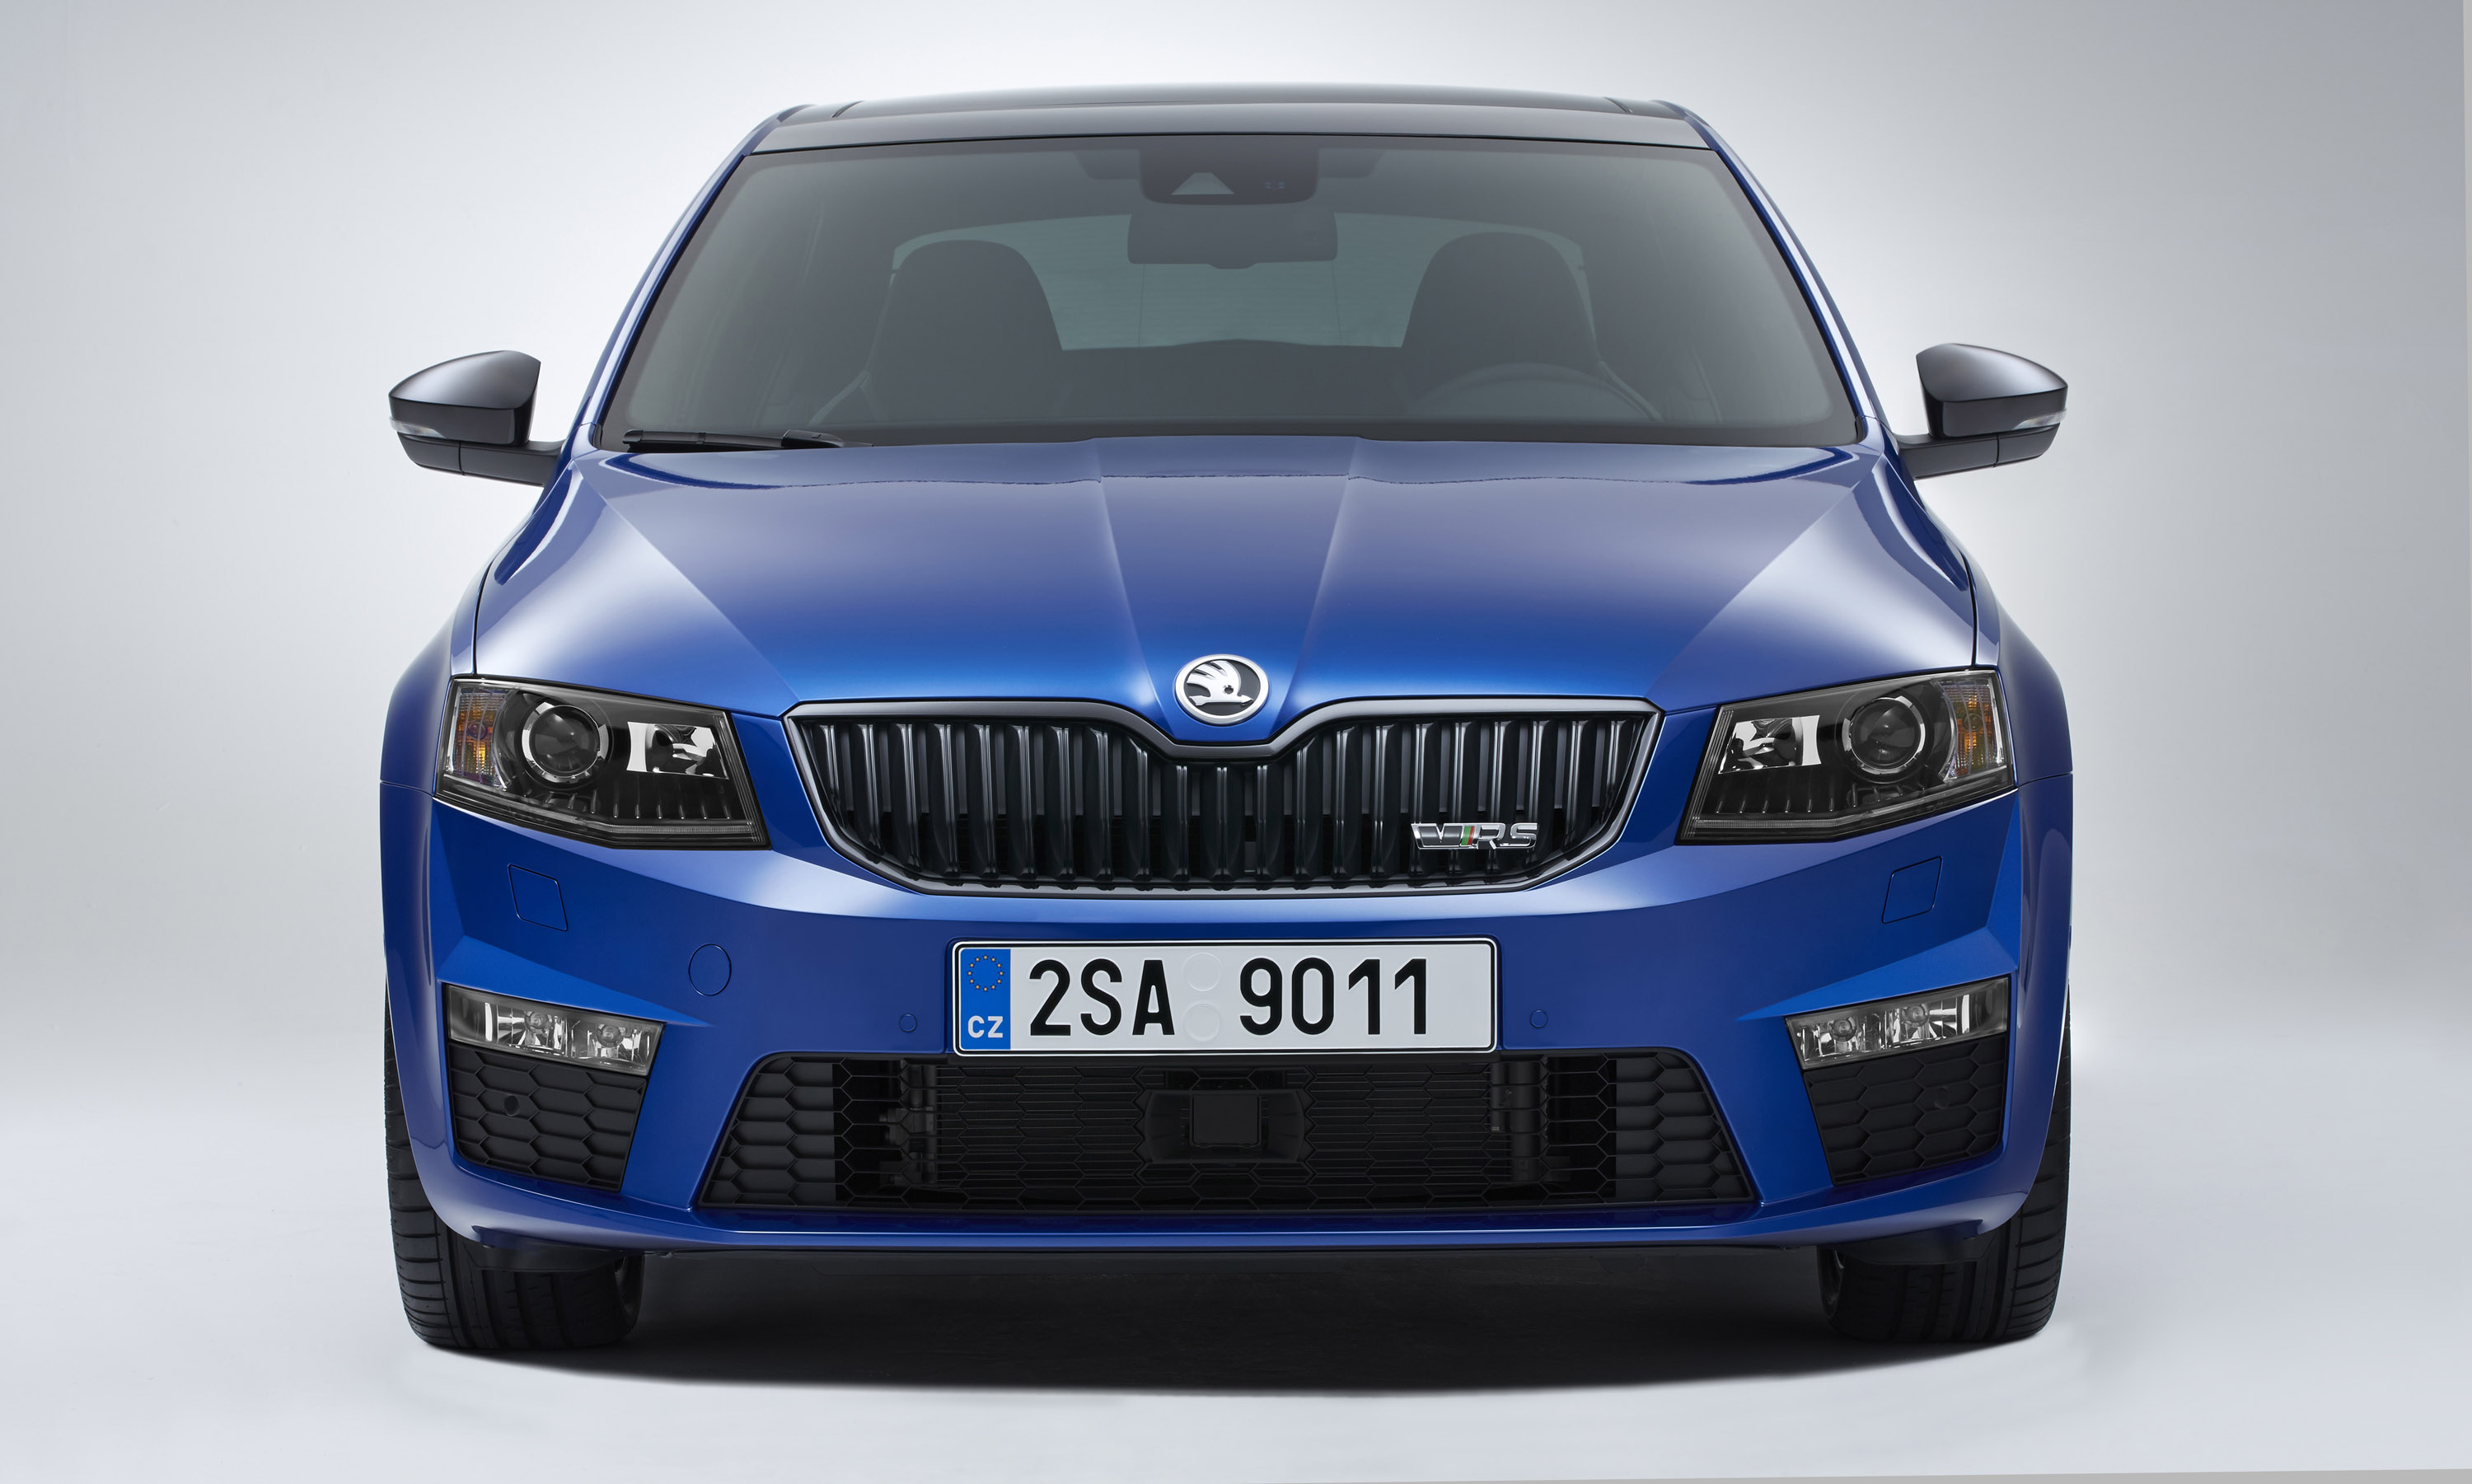 2013 skoda octavia vrs pricing. Black Bedroom Furniture Sets. Home Design Ideas